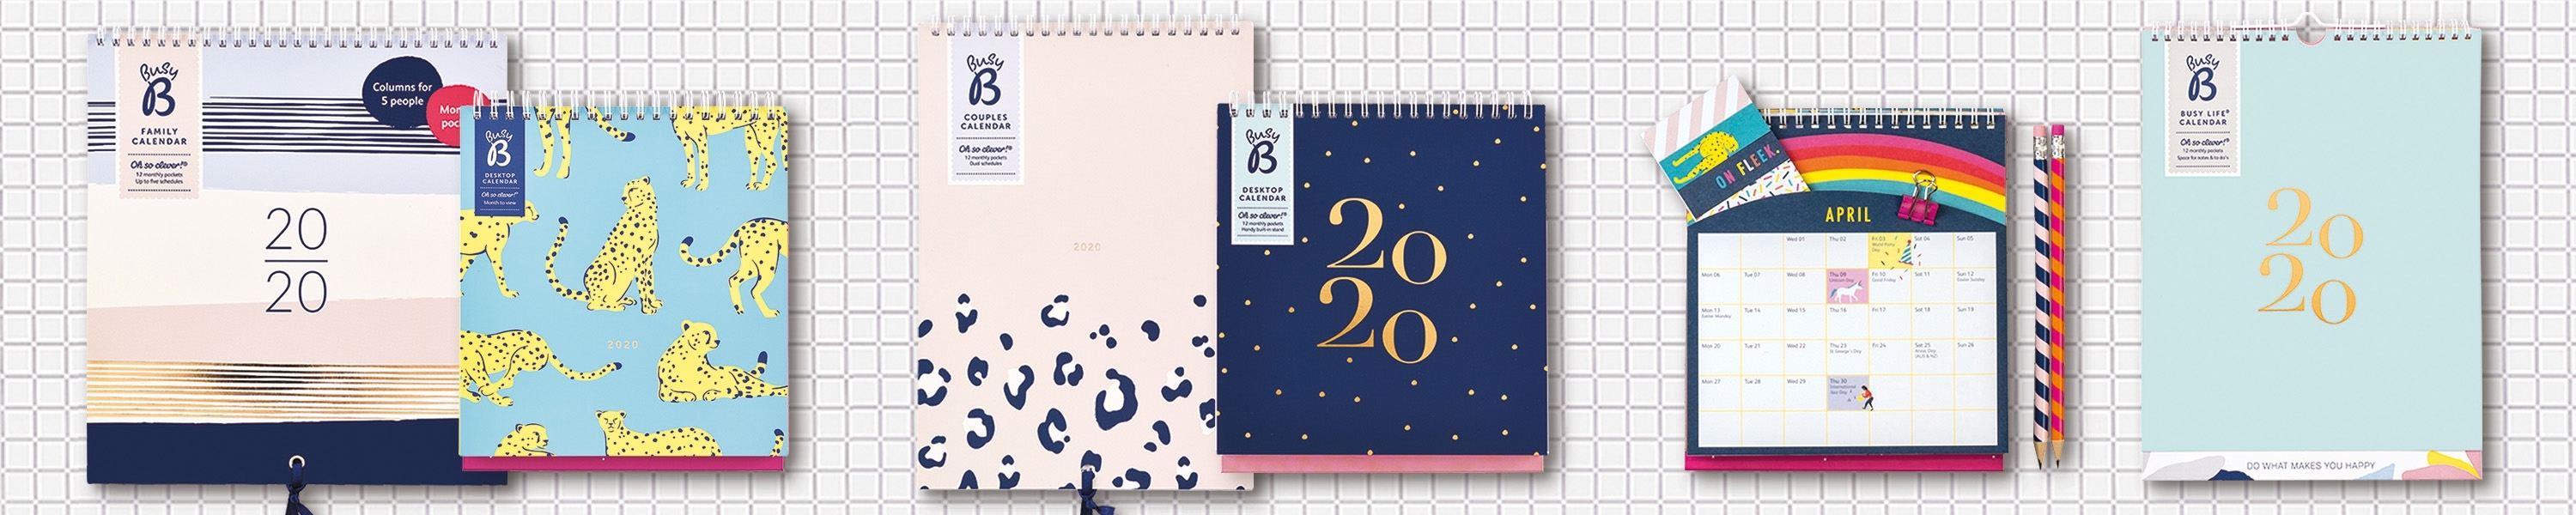 Calendars | For Families, Couples & Desktop Calendars For